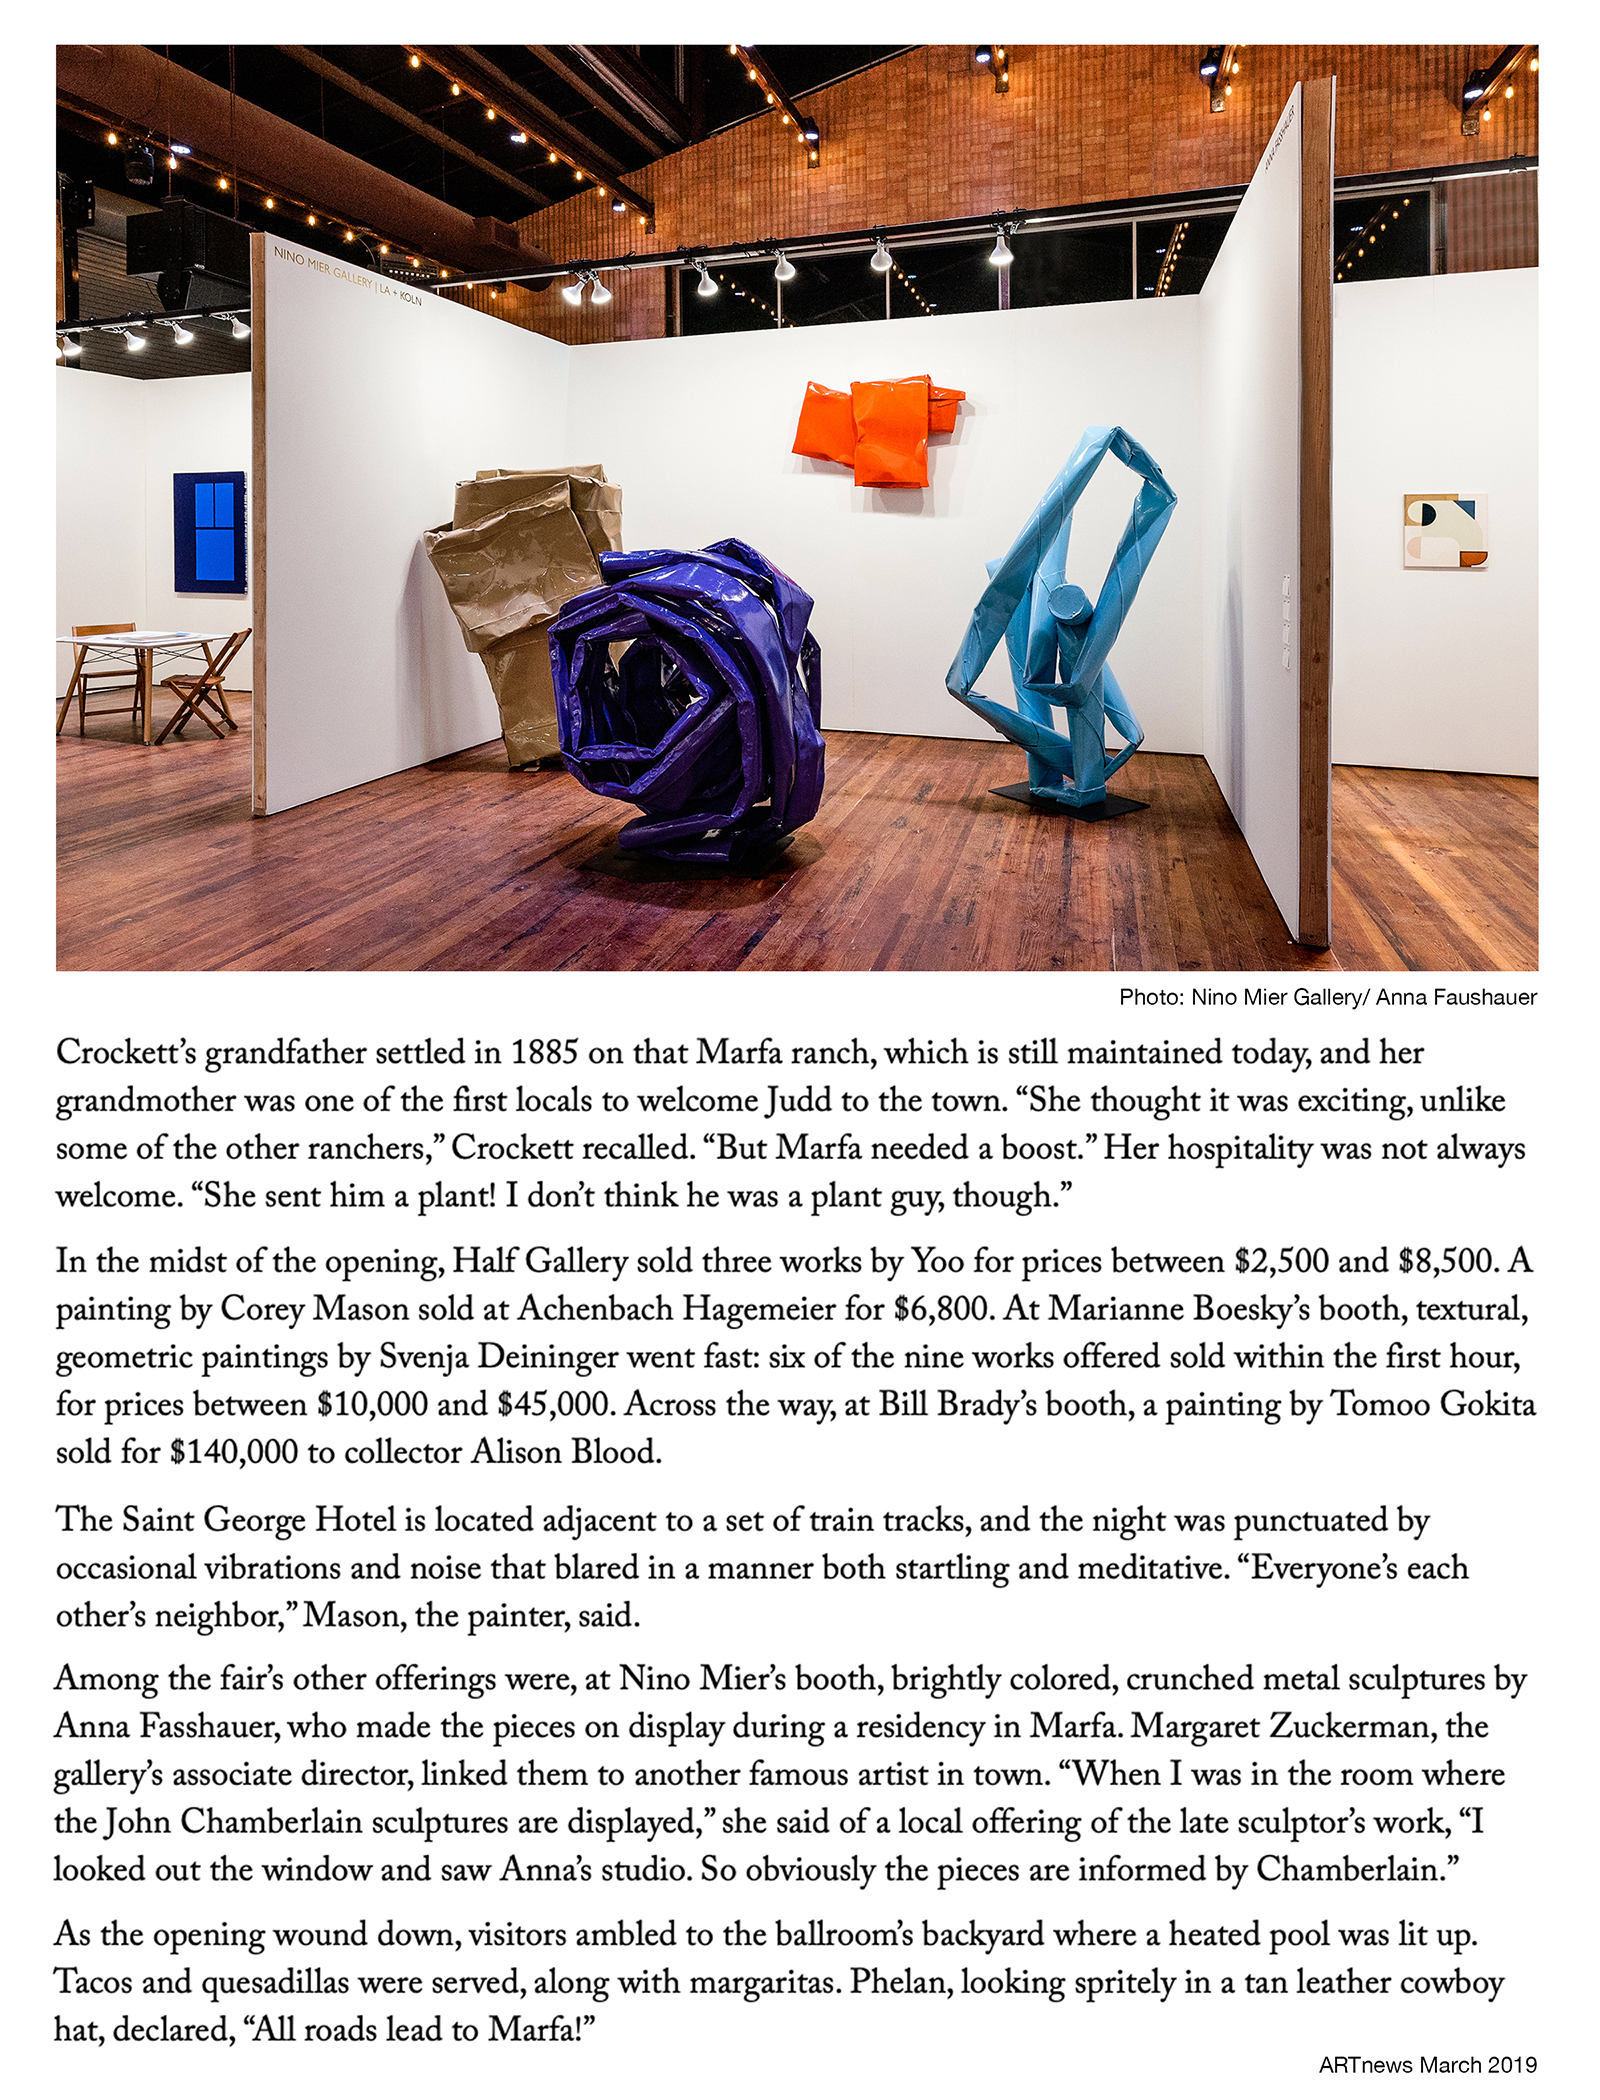 ARTnews-Deep in the West of Texas-A Report from the First Marfa Invitational Art Fair-April 5, 2019-Annie Armstrong-P2.jpg